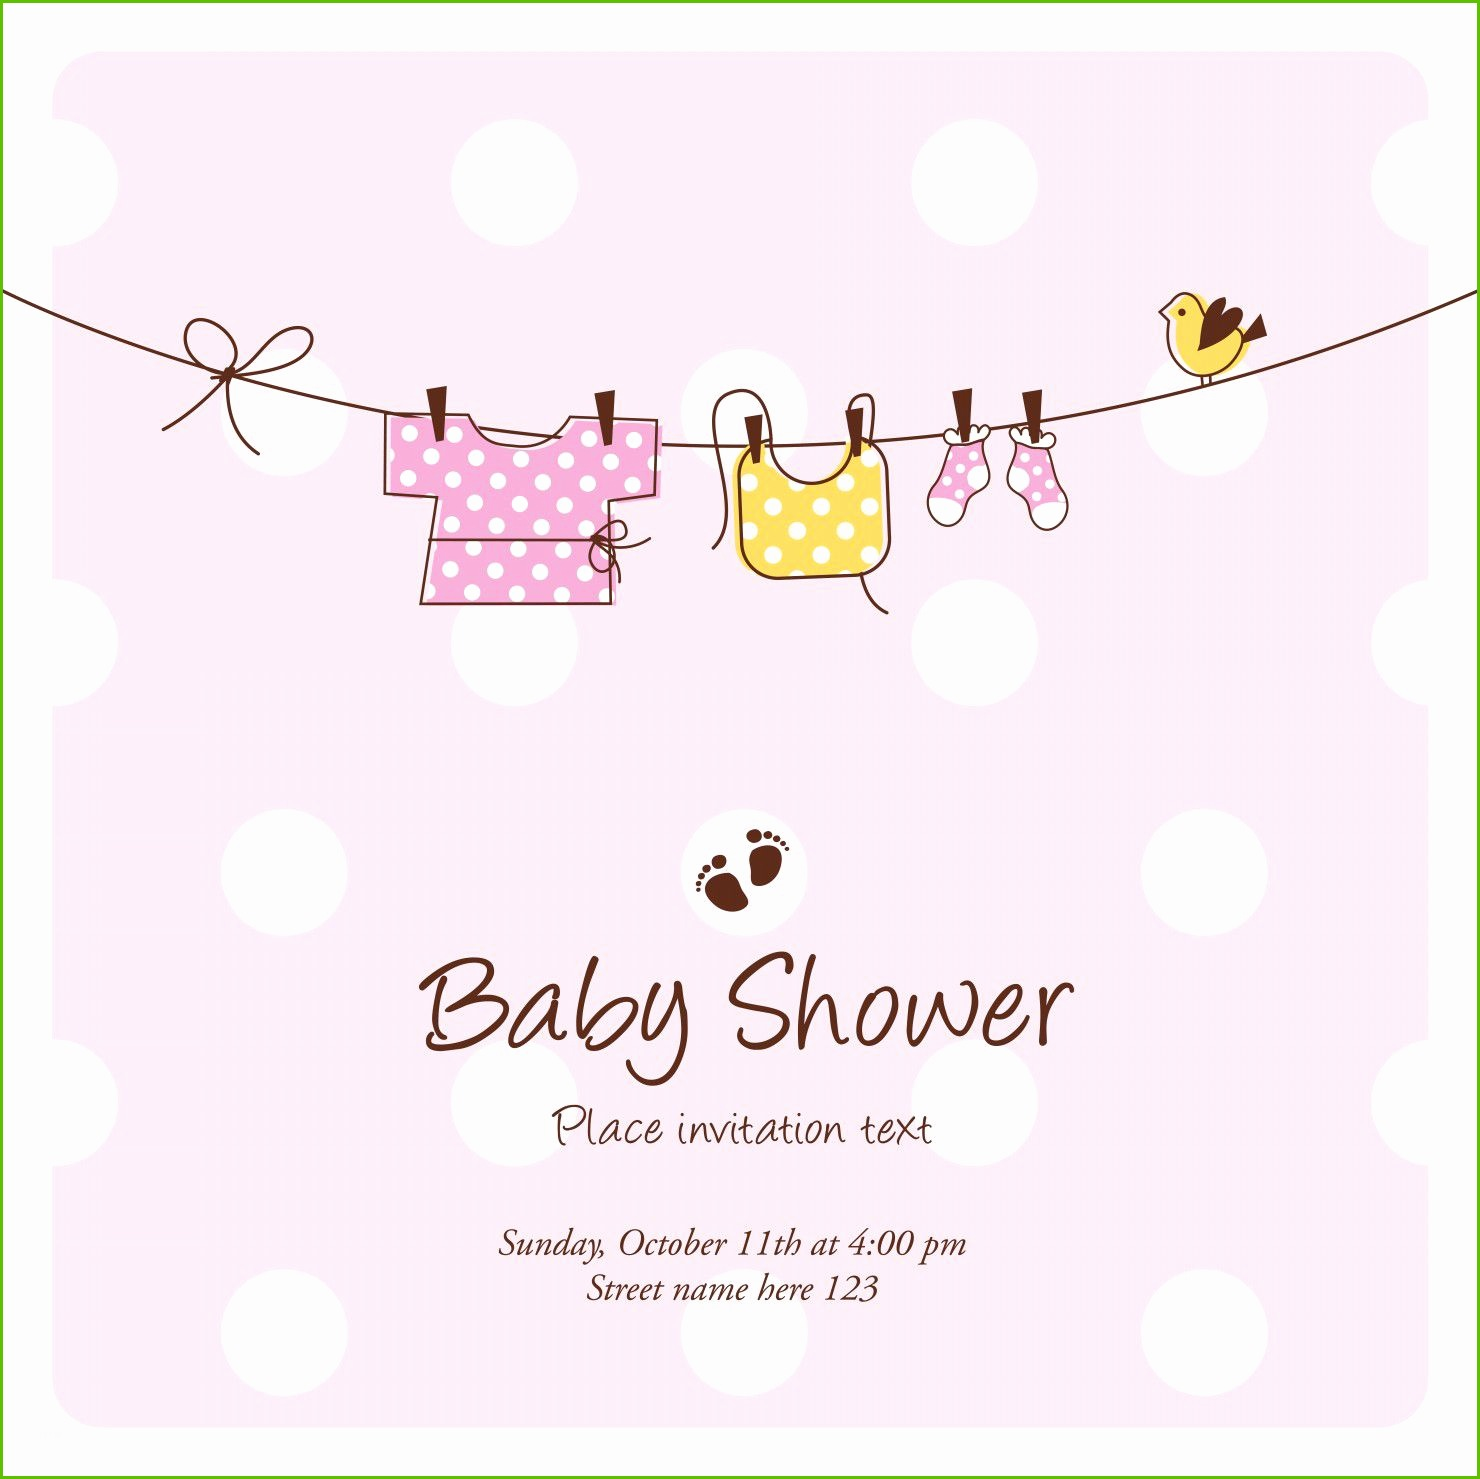 Full Size of Baby Shower:graceful Baby Shower Cards Image Designs 51 Amazing Ideas Of Do You Write On A Baby Shower Card Baby 51 Amazing Ideas Of Do You Write On A Baby Shower Card